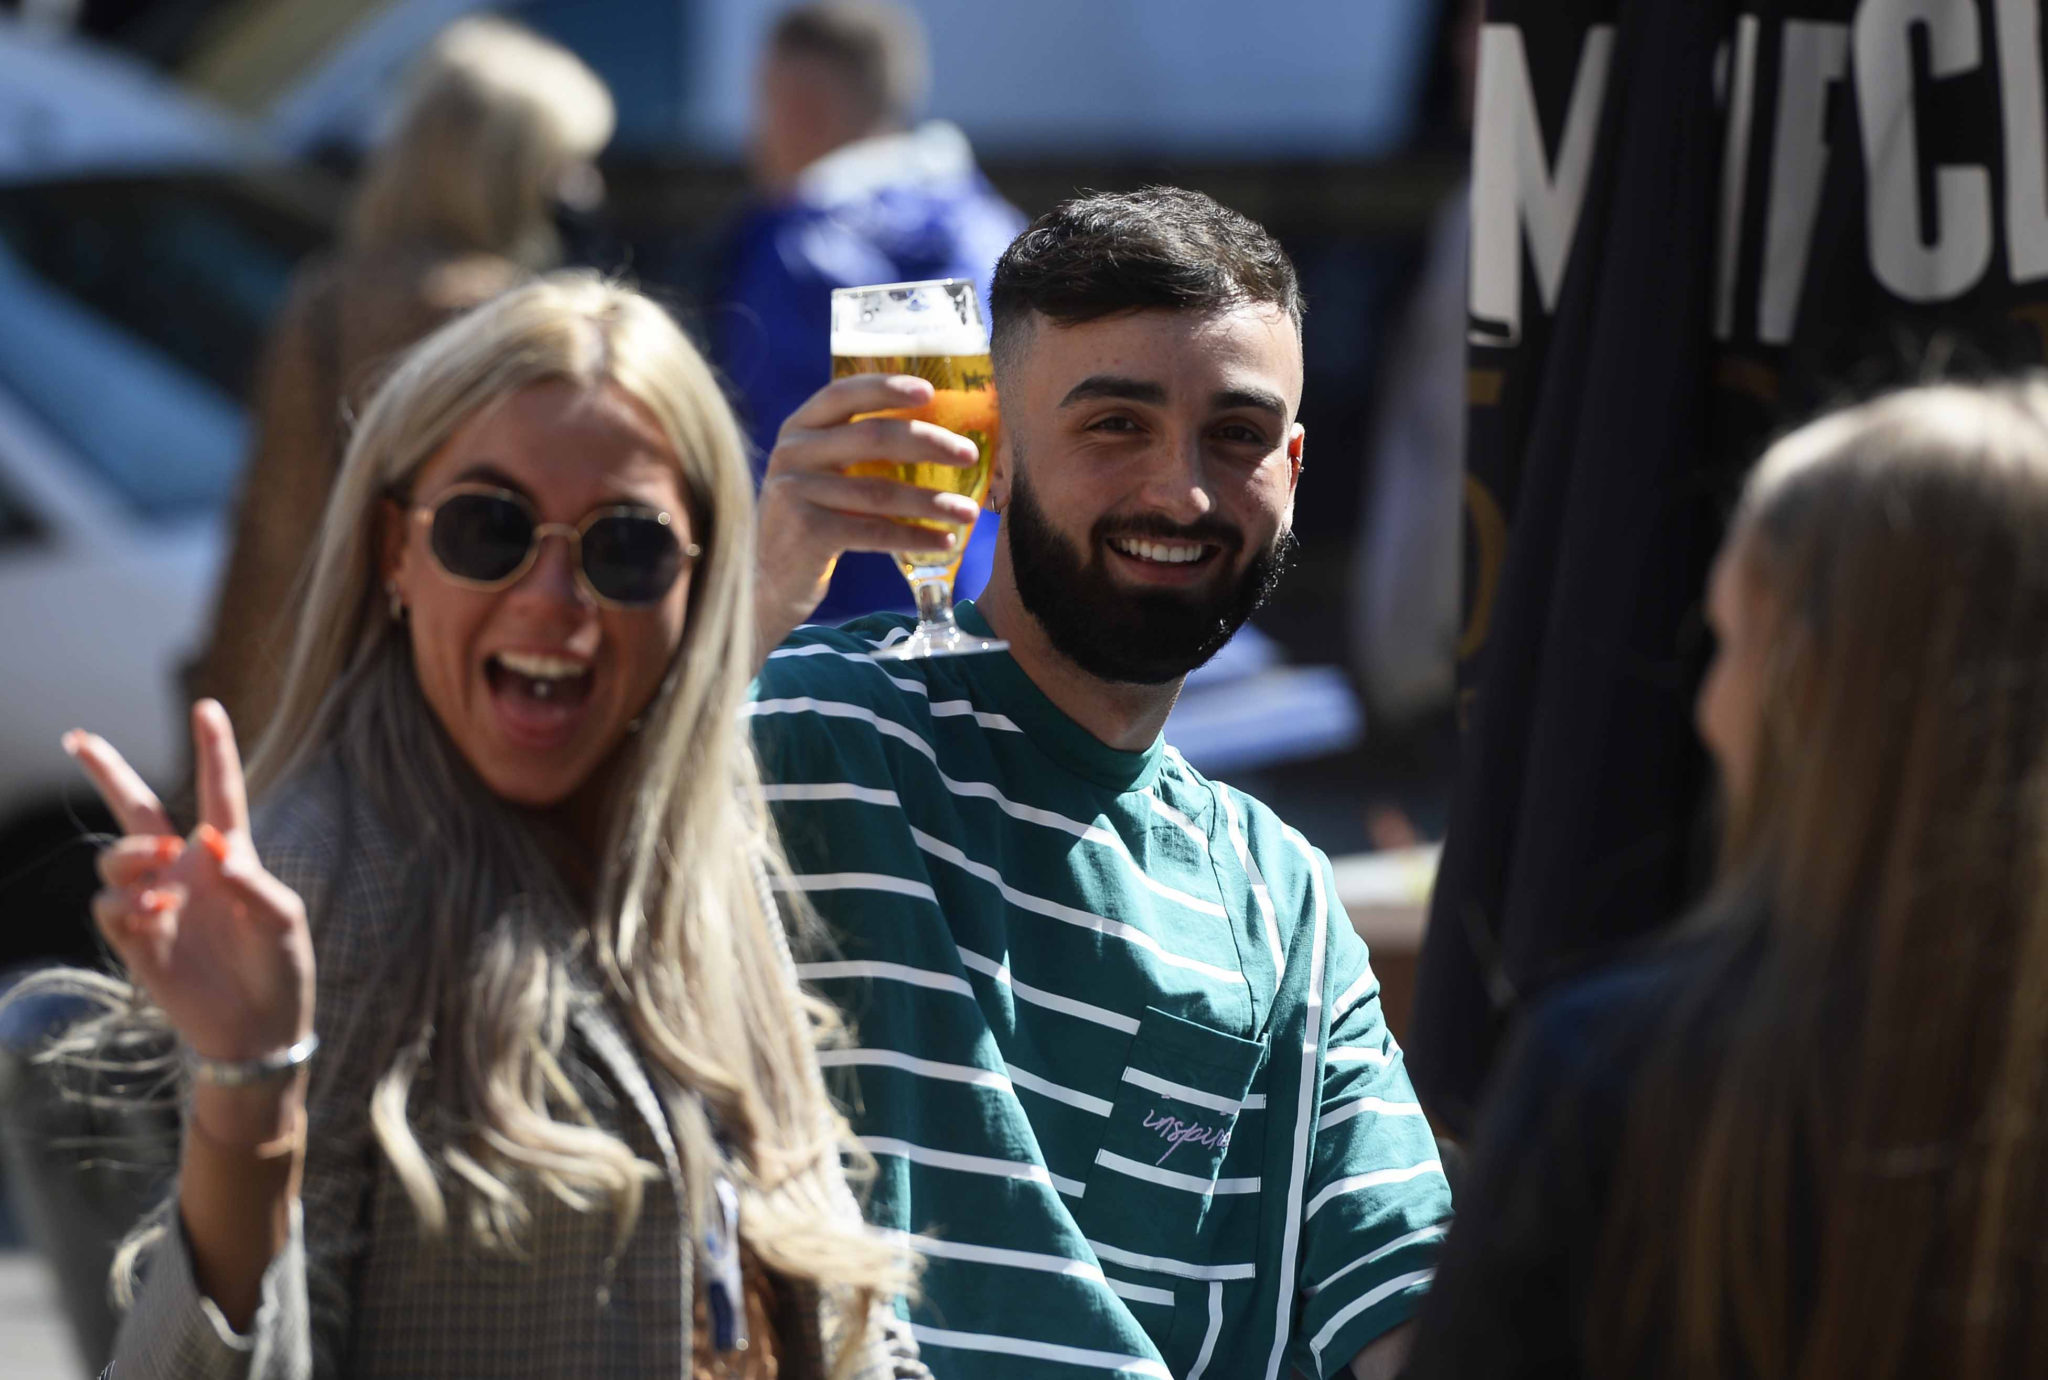 People enjoy a drink at a bar in Belfast,